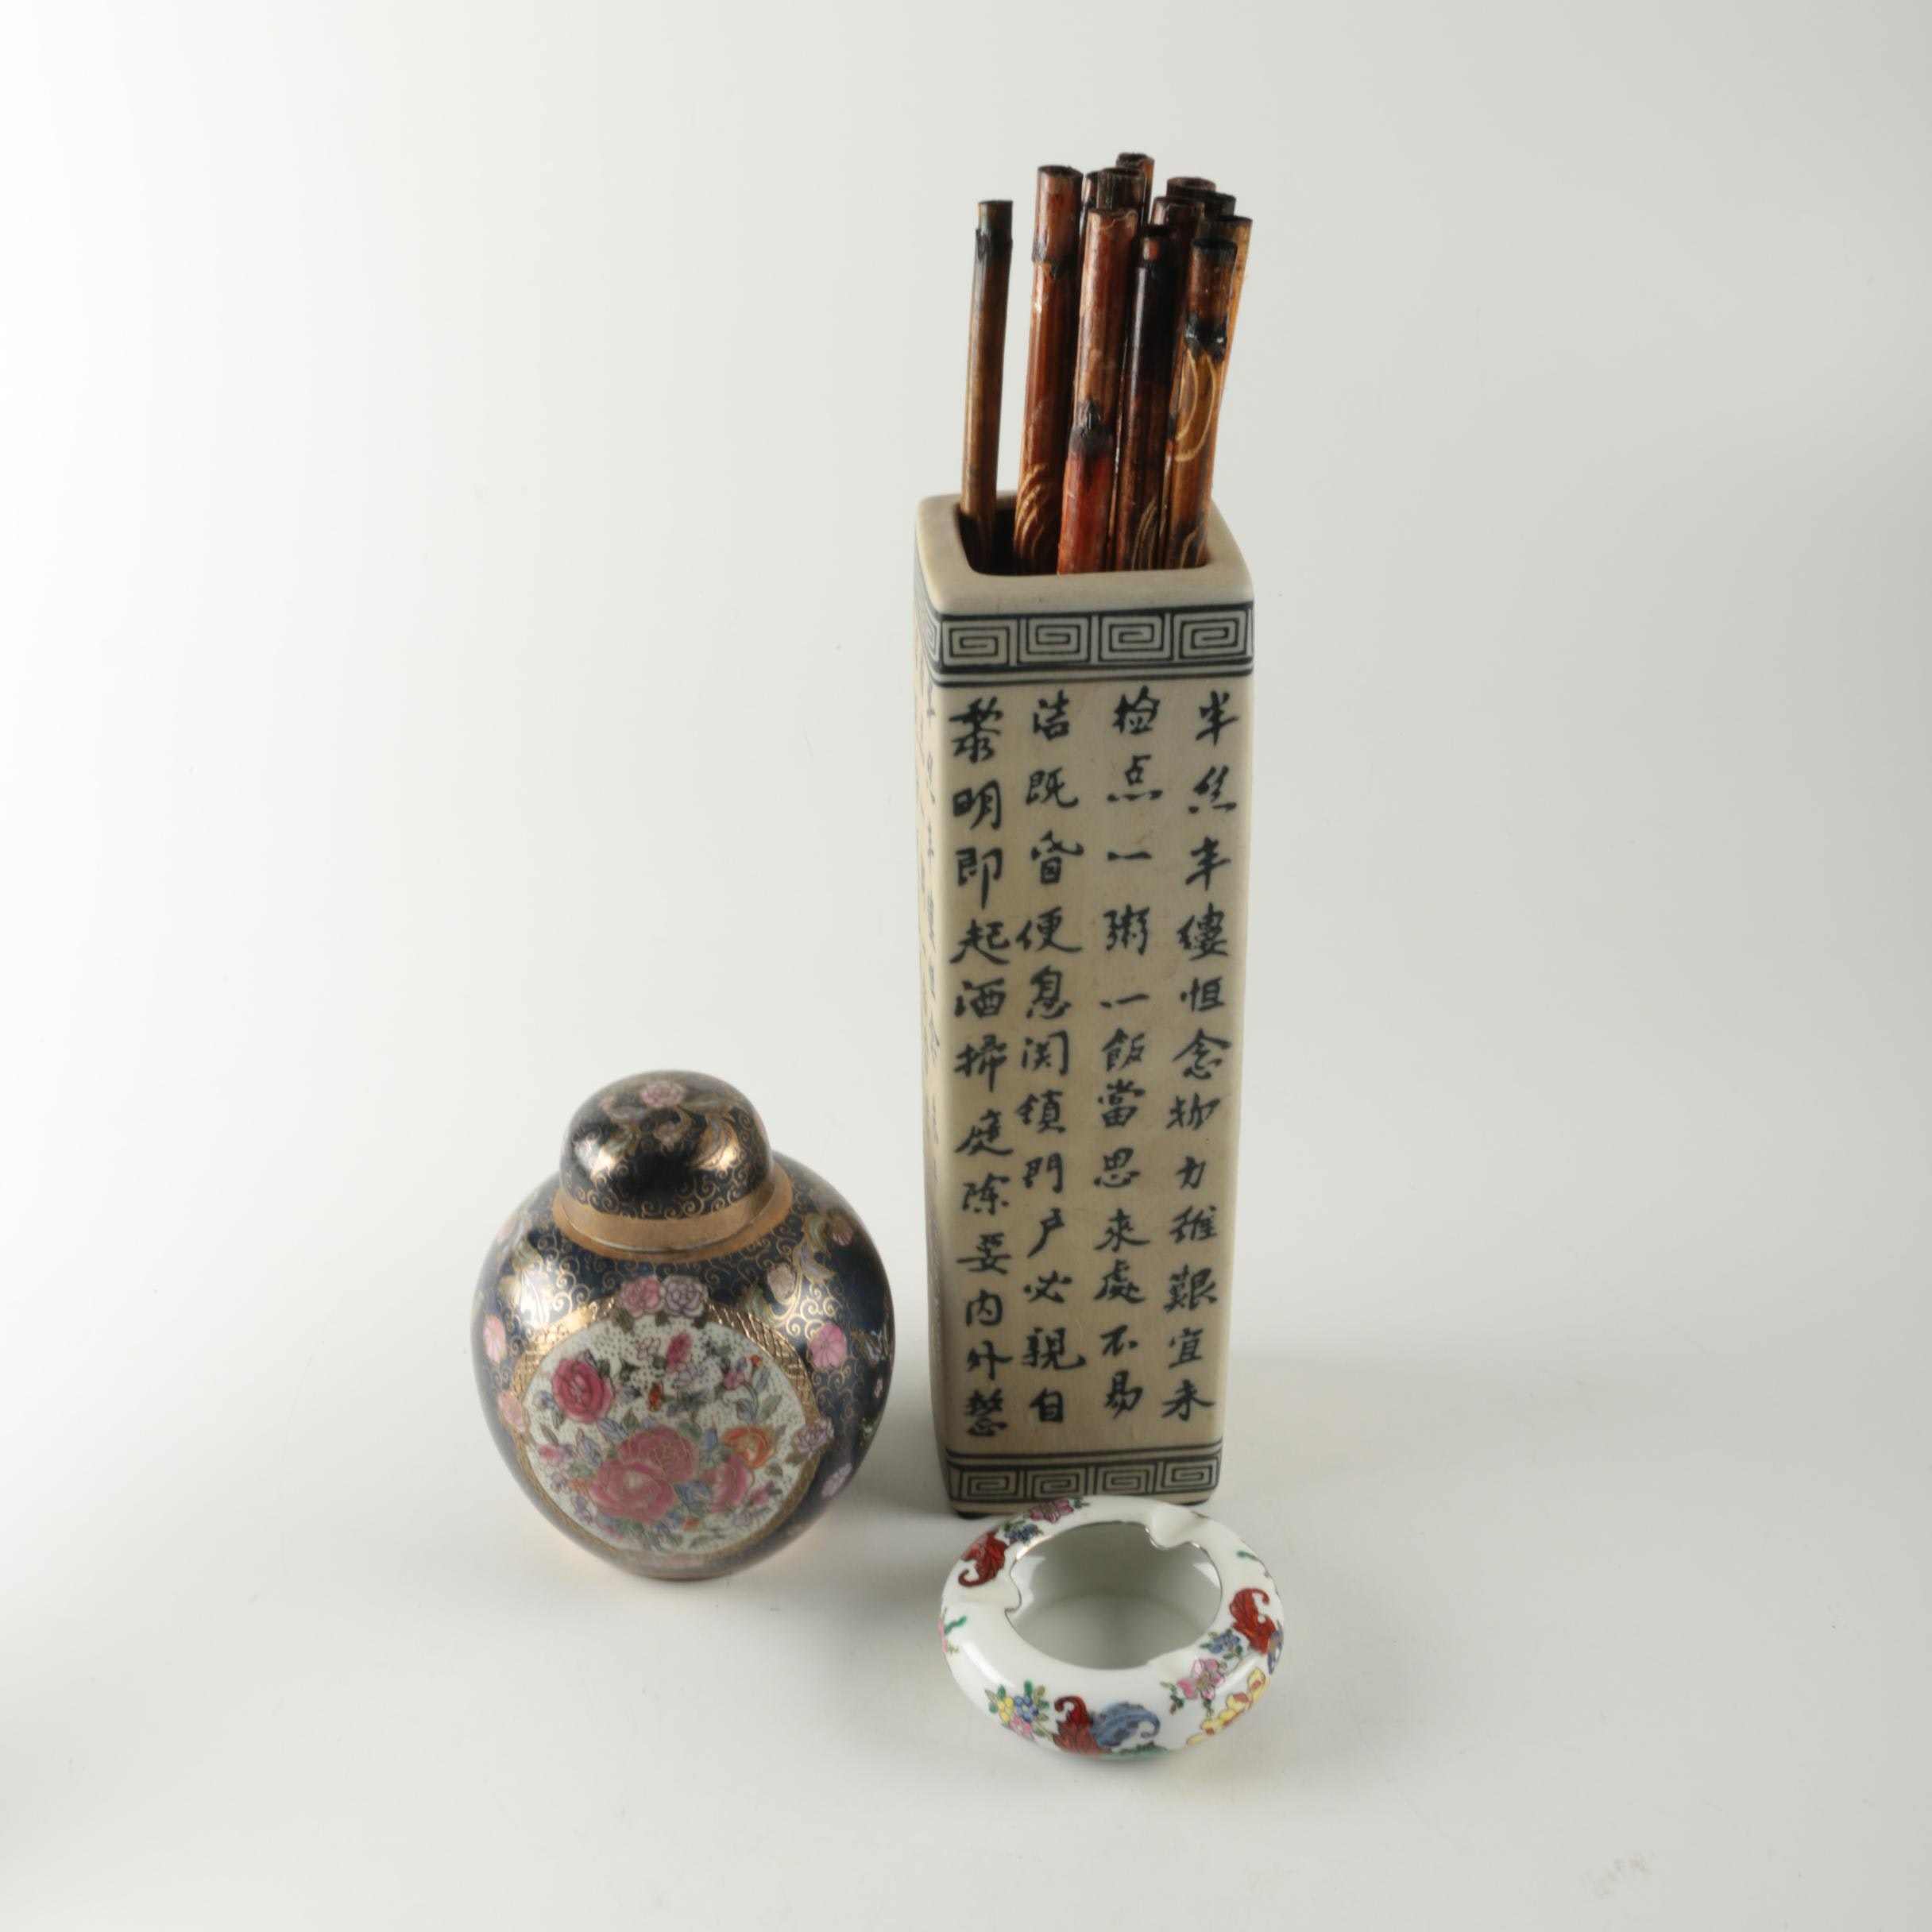 Chinese Porcelain and Ceramic Vessels with Decorative Bamboo